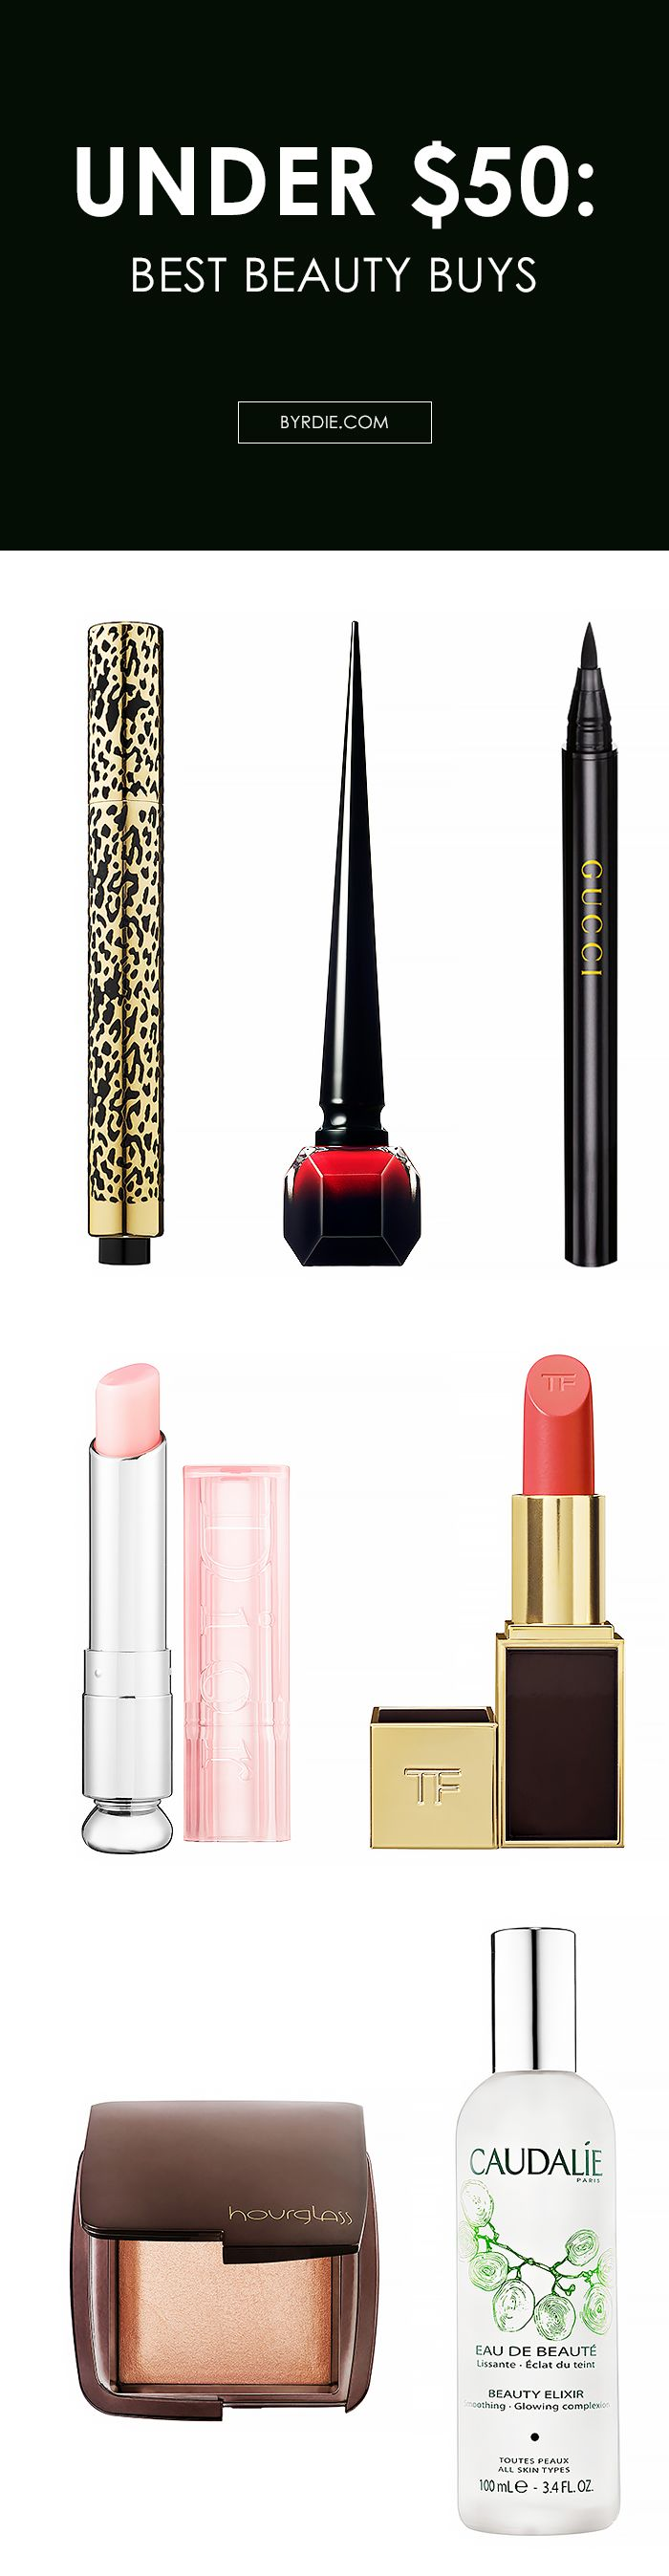 The best splurge-worthy beauty buys, all under $50 // #makeup #shopping